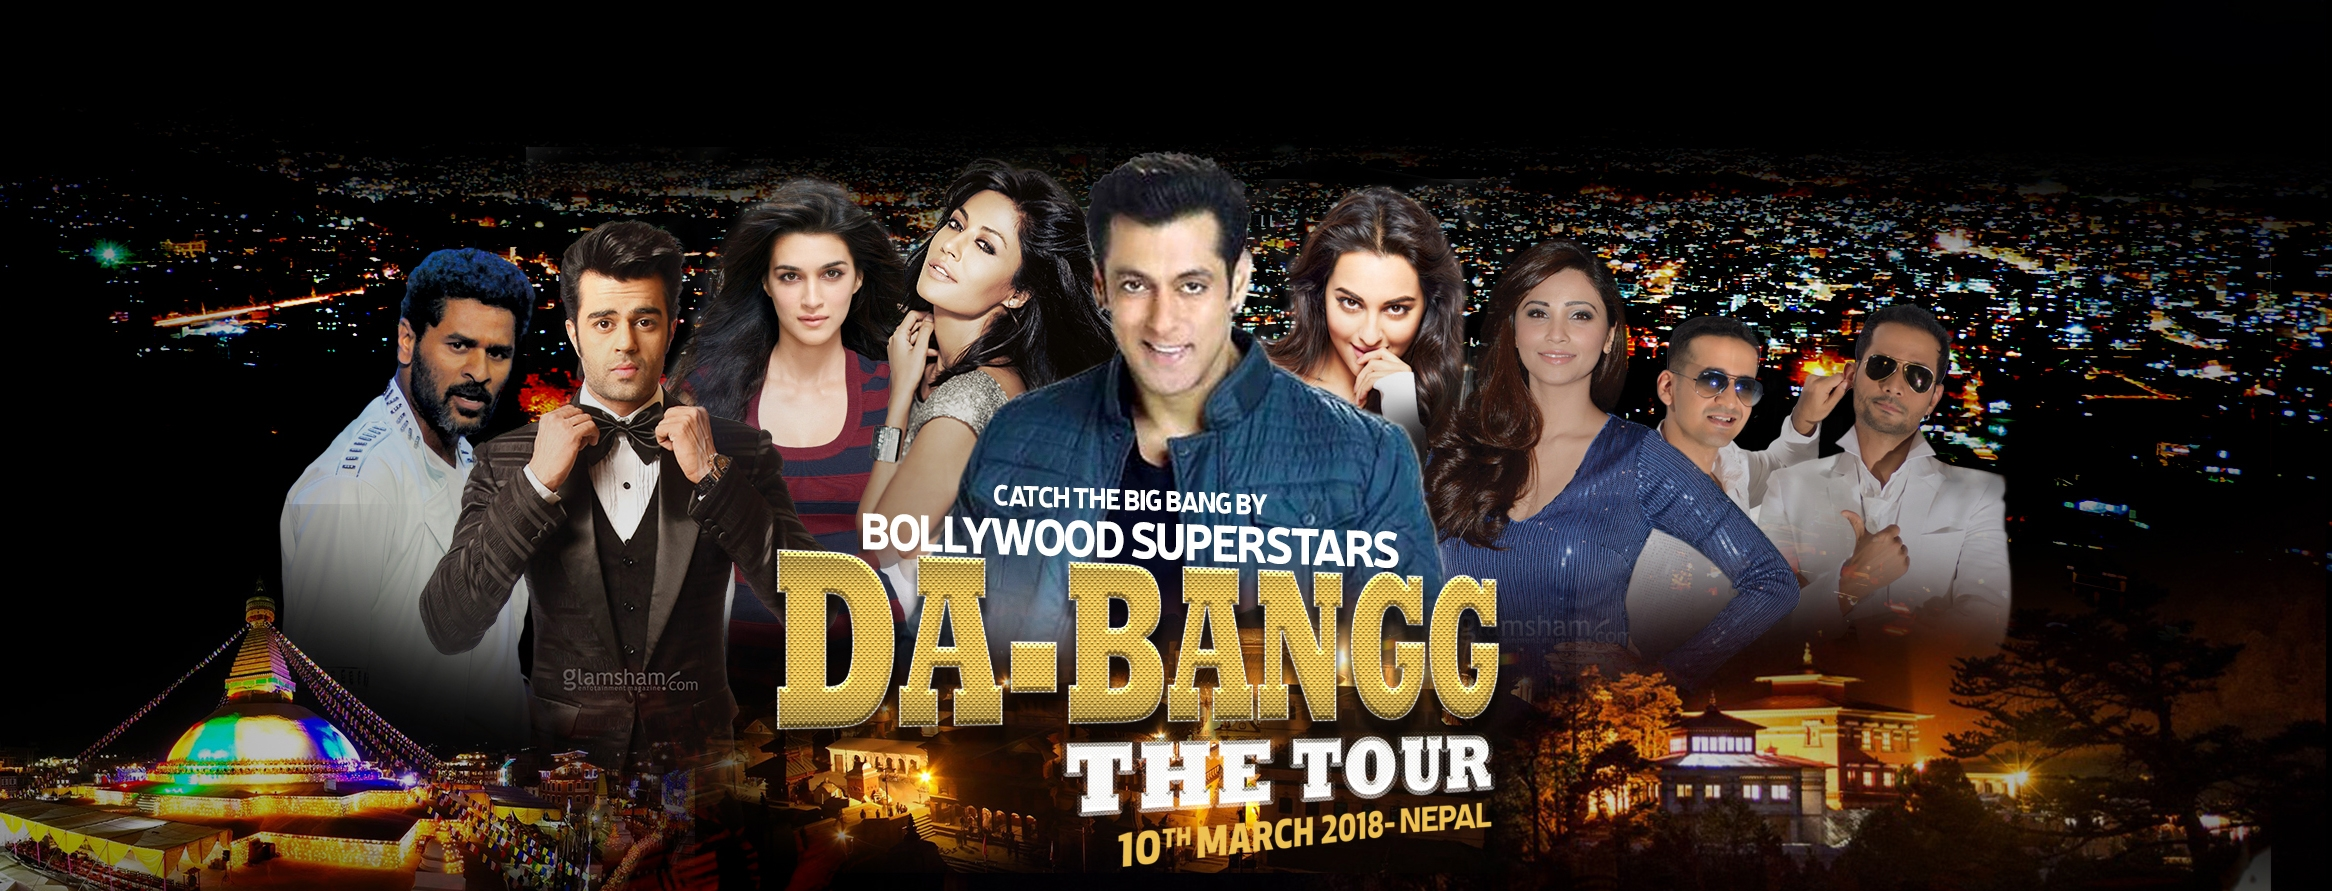 dabang the toor